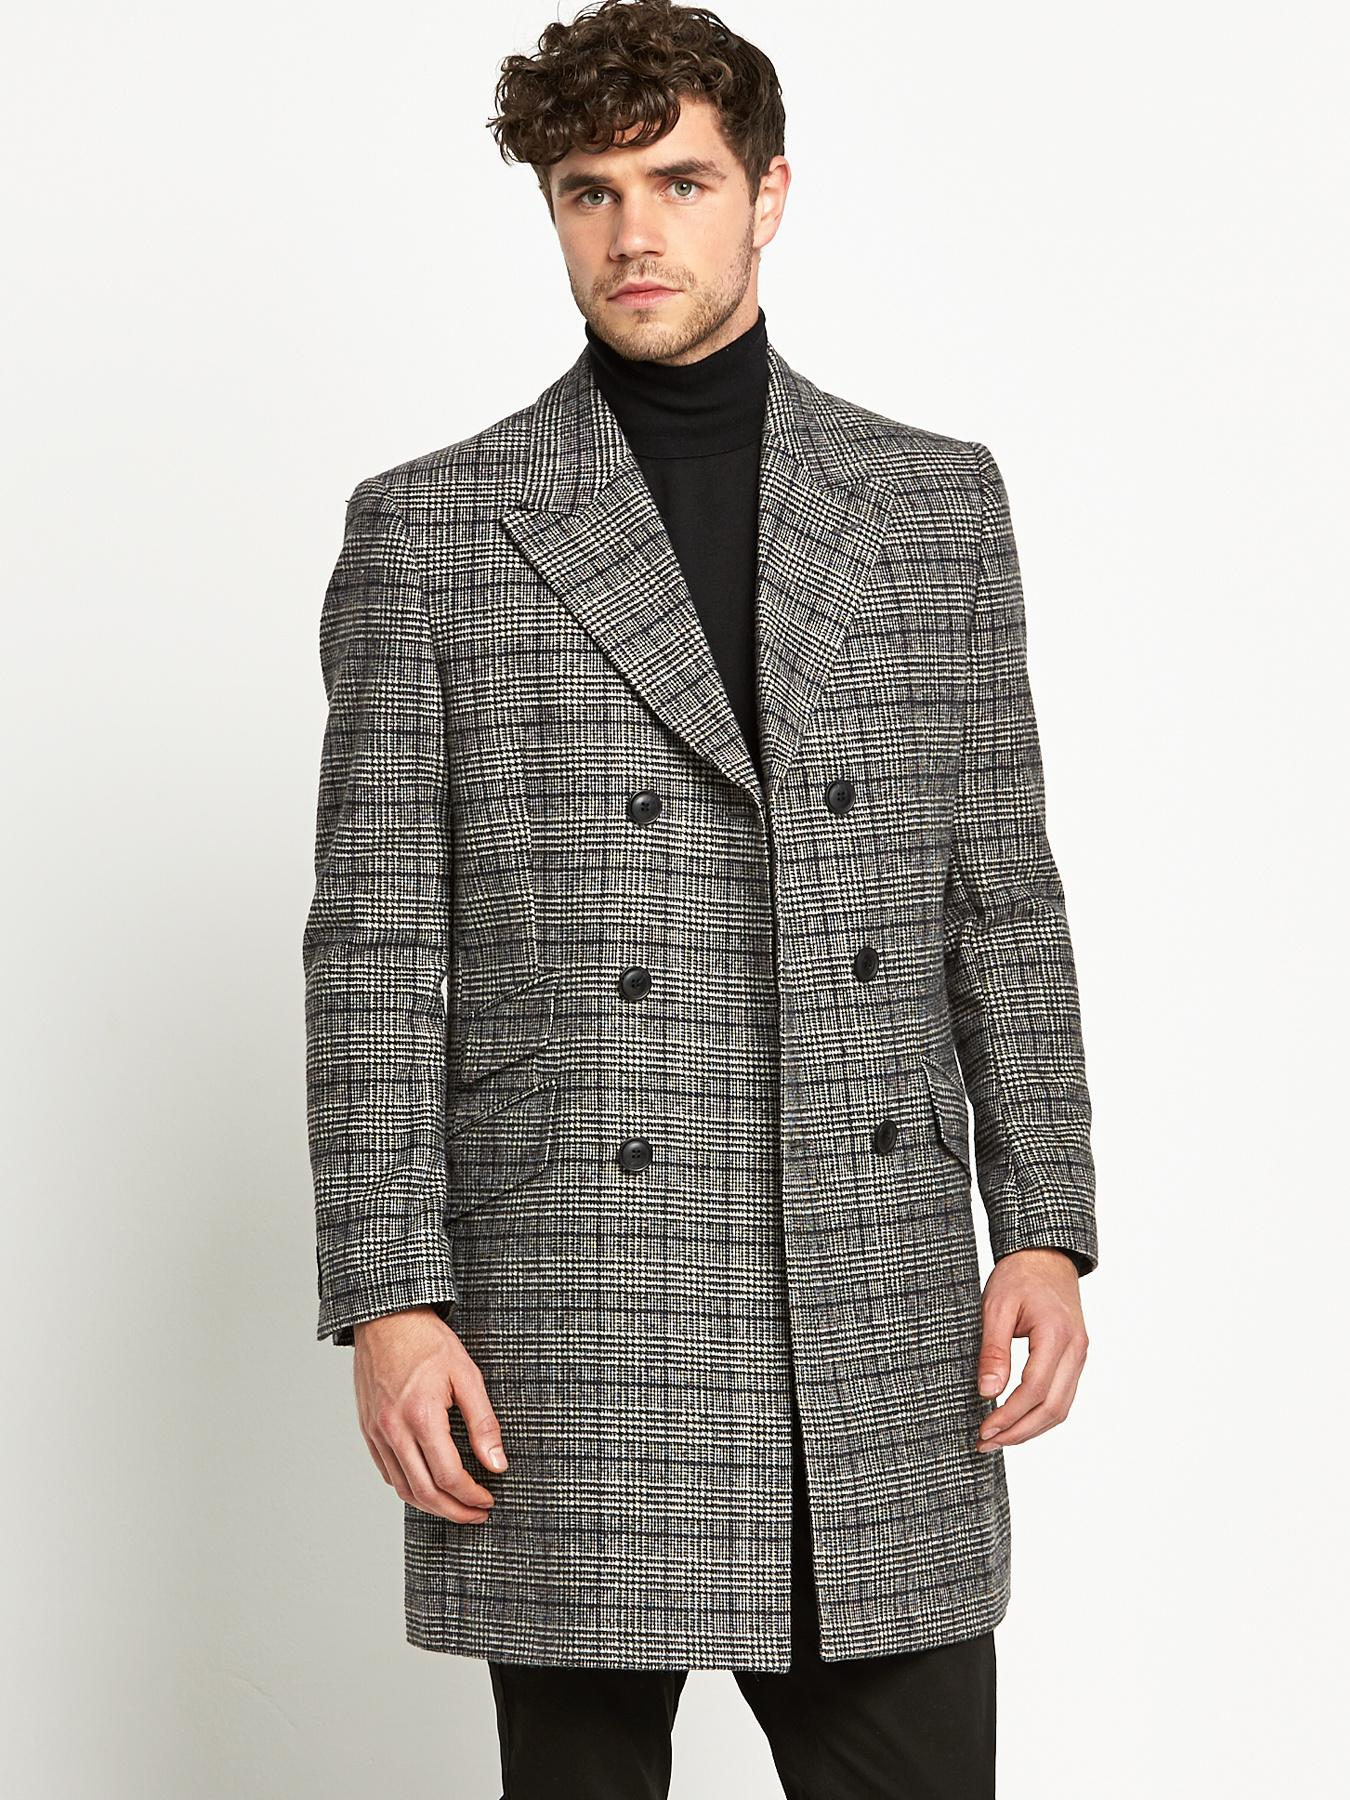 Taylor & Reece Mens Double Breasted Overcoat - Grey, Grey